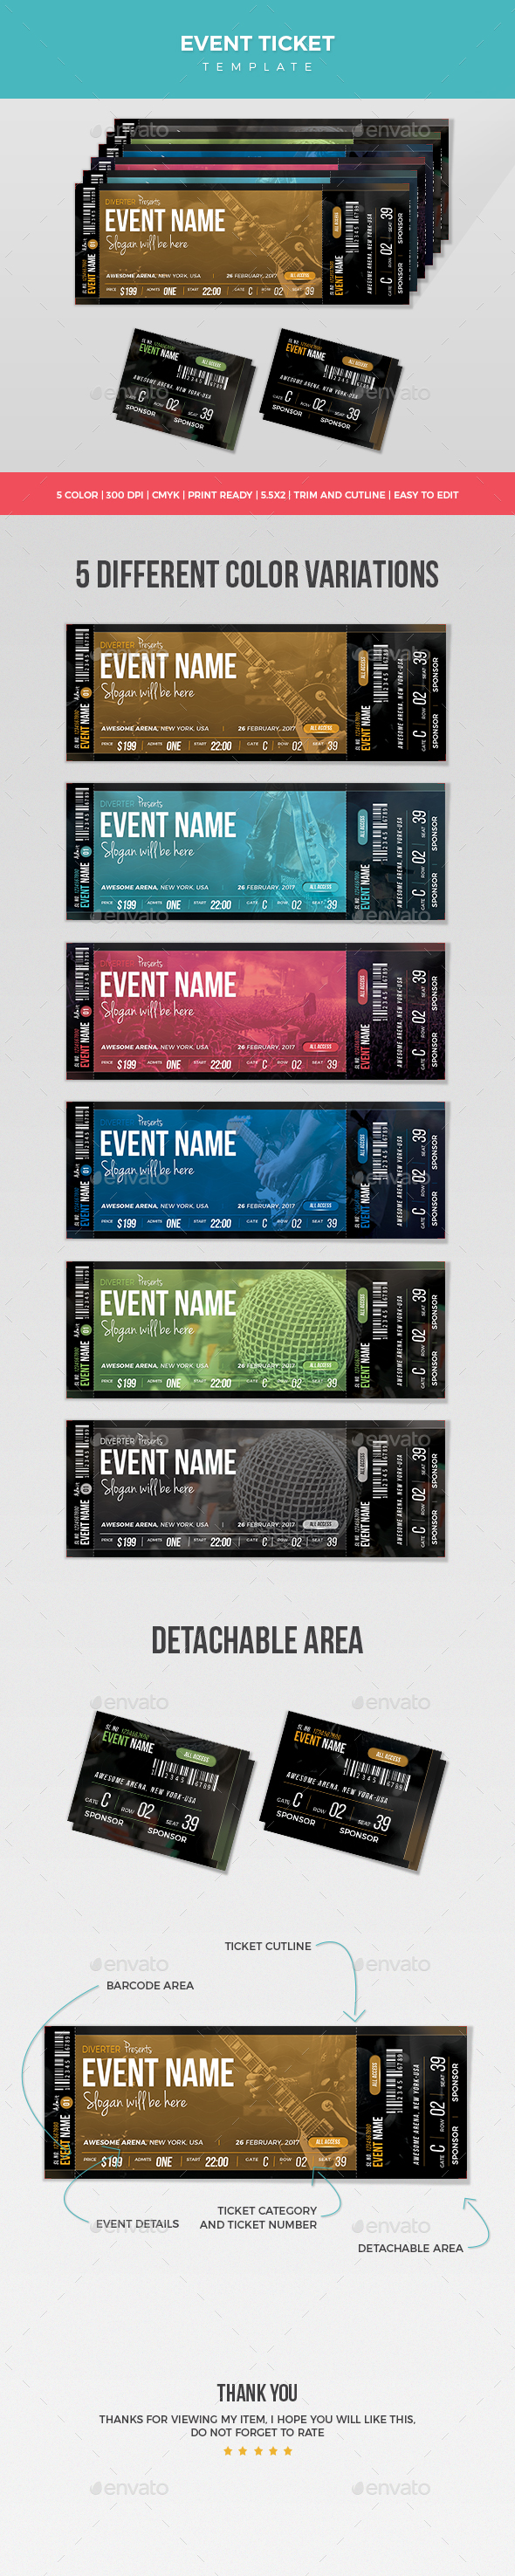 Event Ticket - Miscellaneous Events